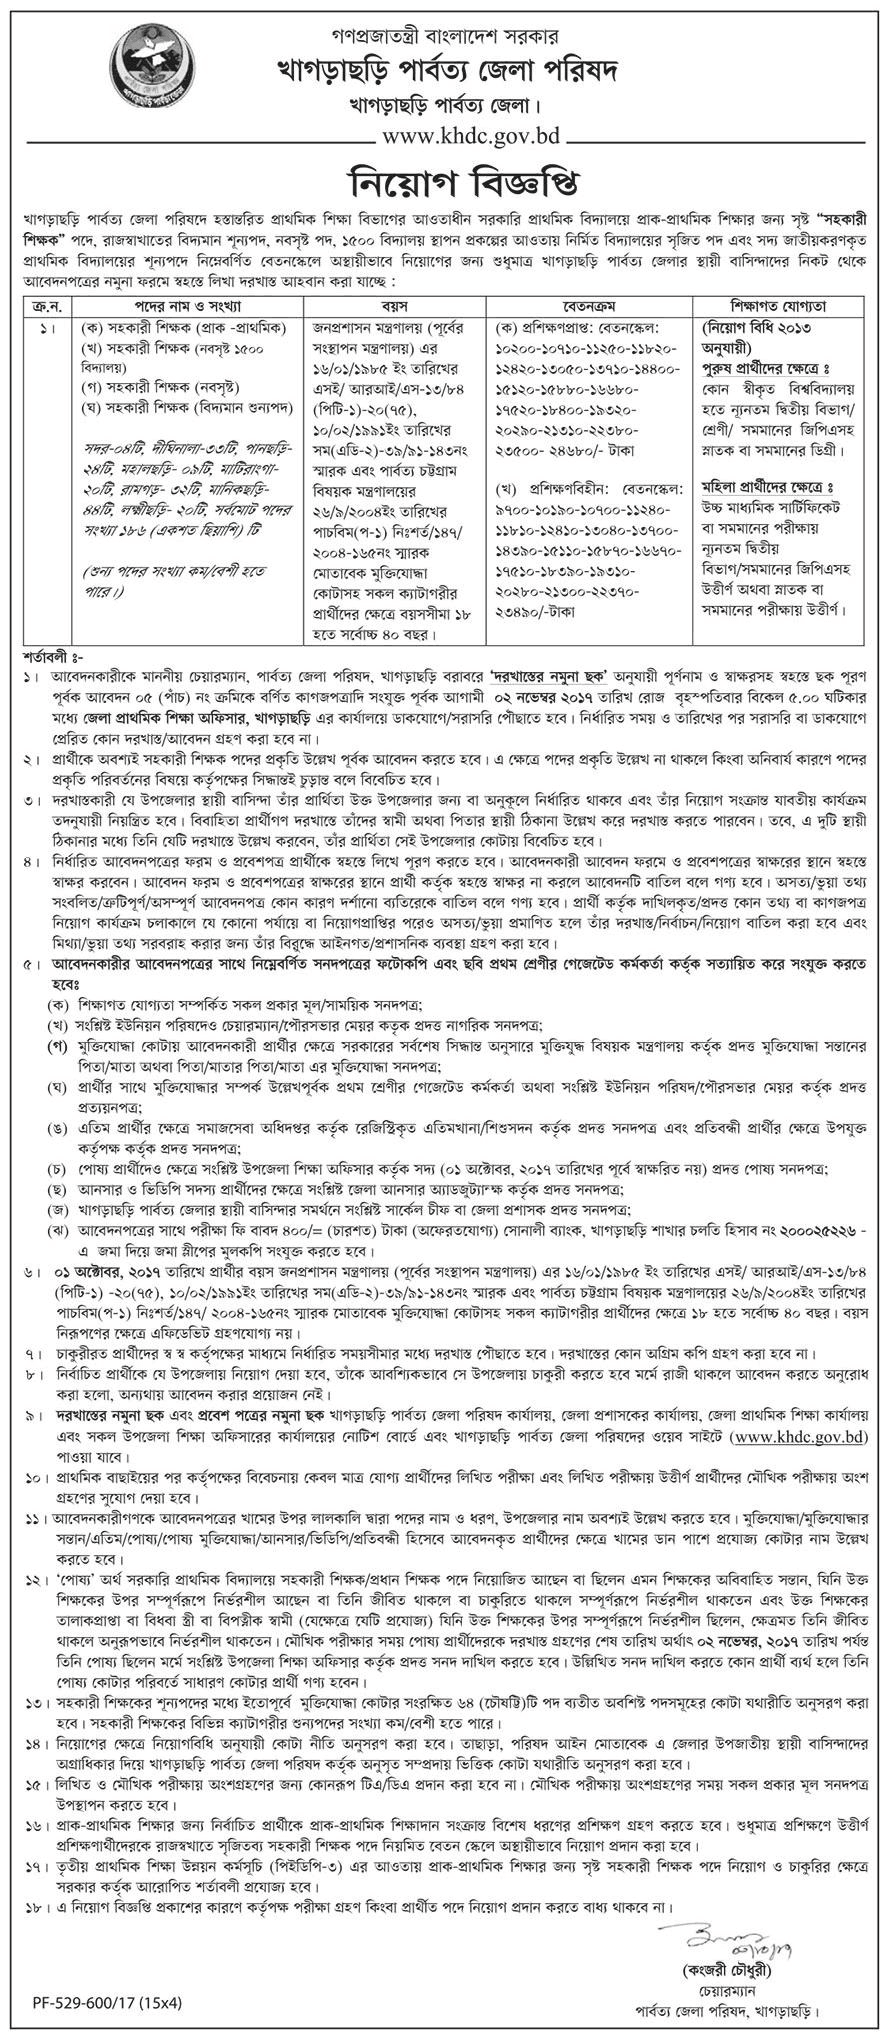 Primary Assistant Teacher Job Circular 2017 - CareerGuideBD